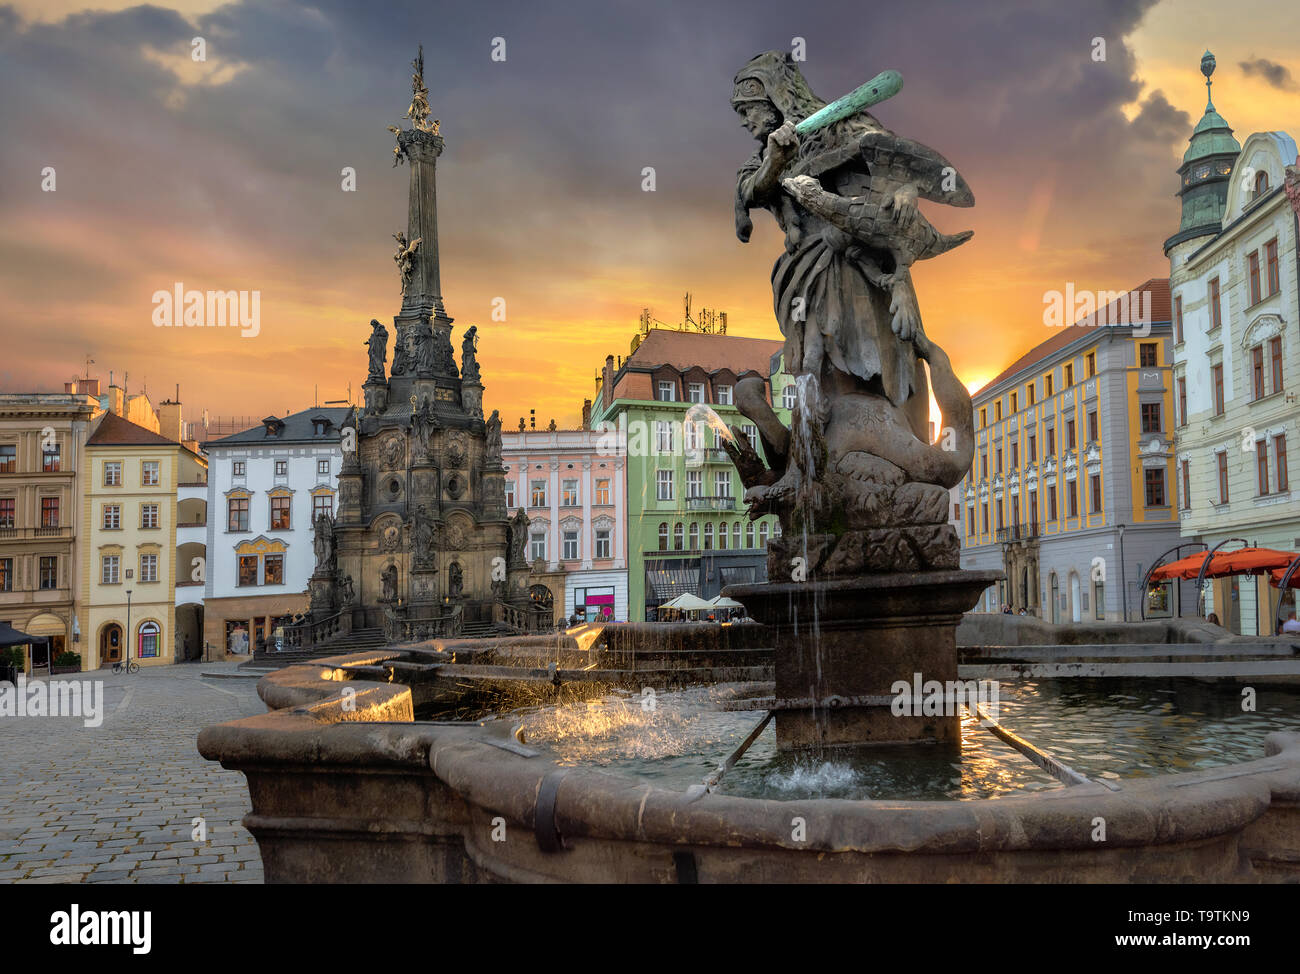 Cityscape of main square with Hercules fountain and monument Holy Trinity Column at sunset sunlight. Olomouc, Czech Republic - Stock Image